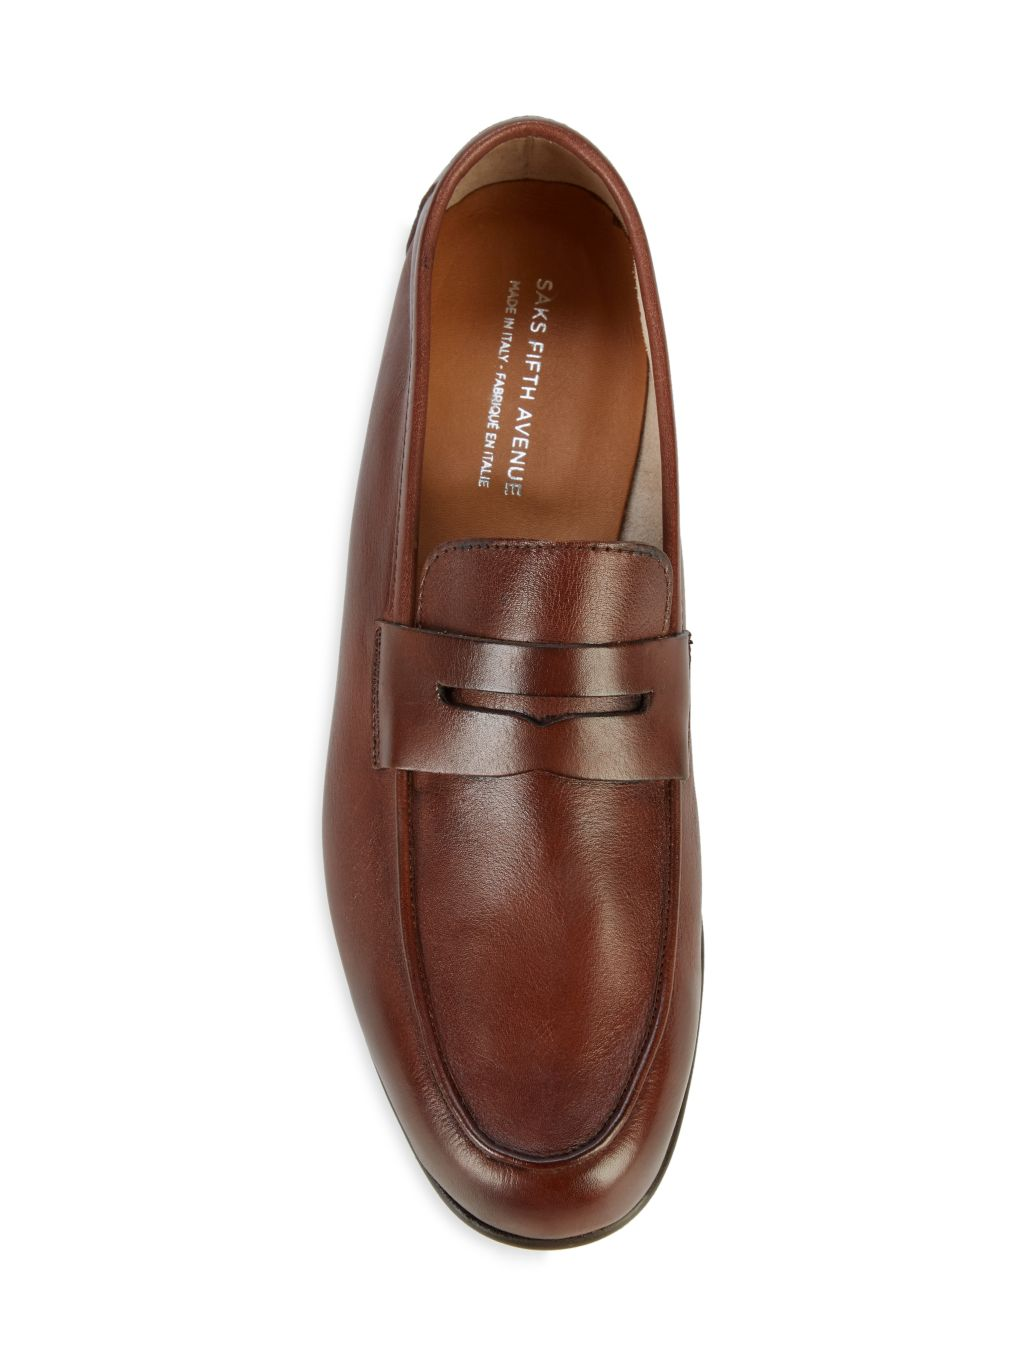 Saks Fifth Avenue Made in Italy Flex Leather Penny Loafers